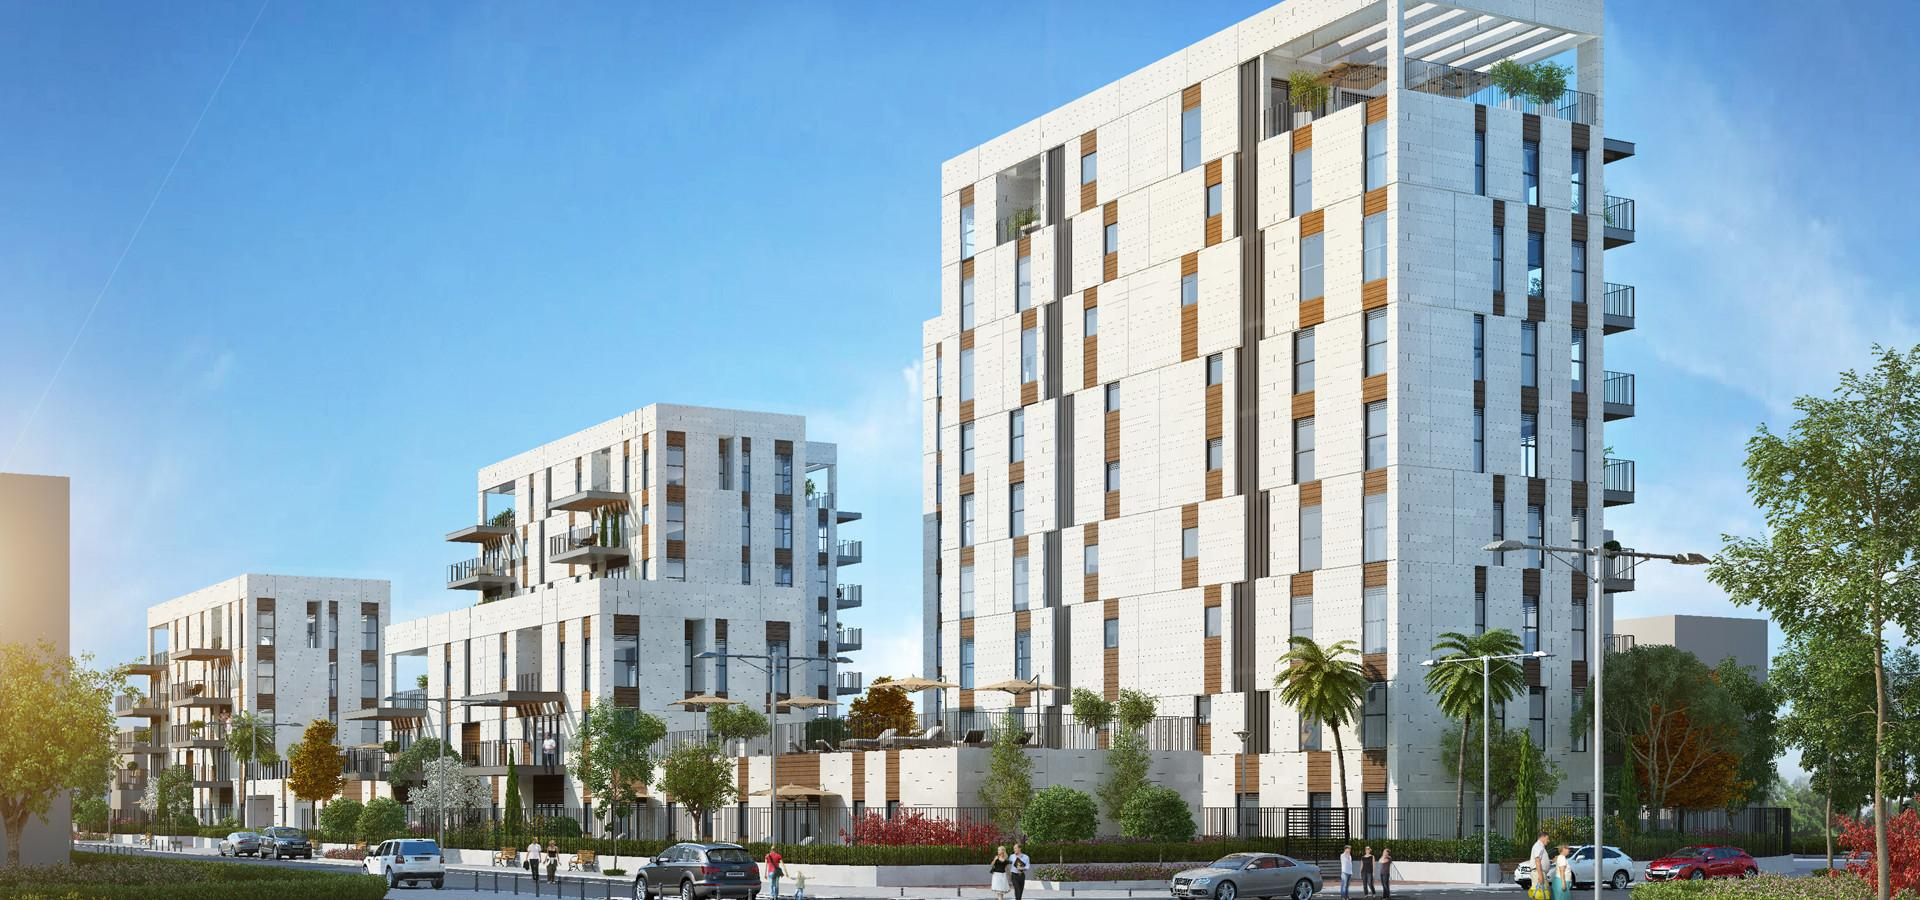 Kfar Yona Residential Complex Architects